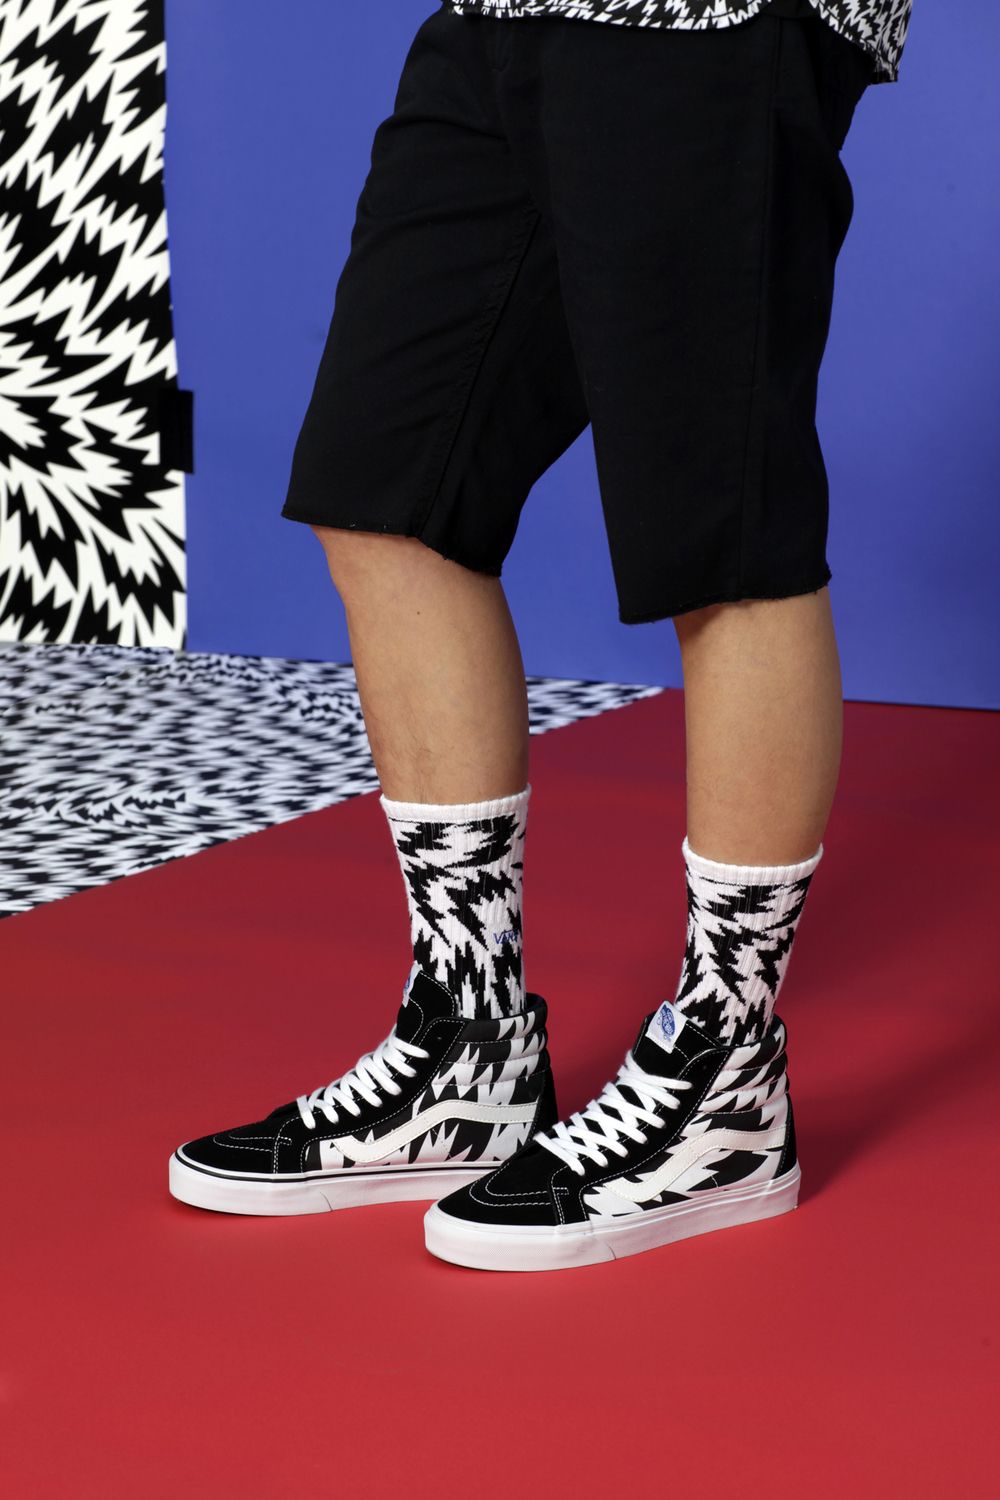 Eley Kishimoto for Vans Classics Collection-10.jpg